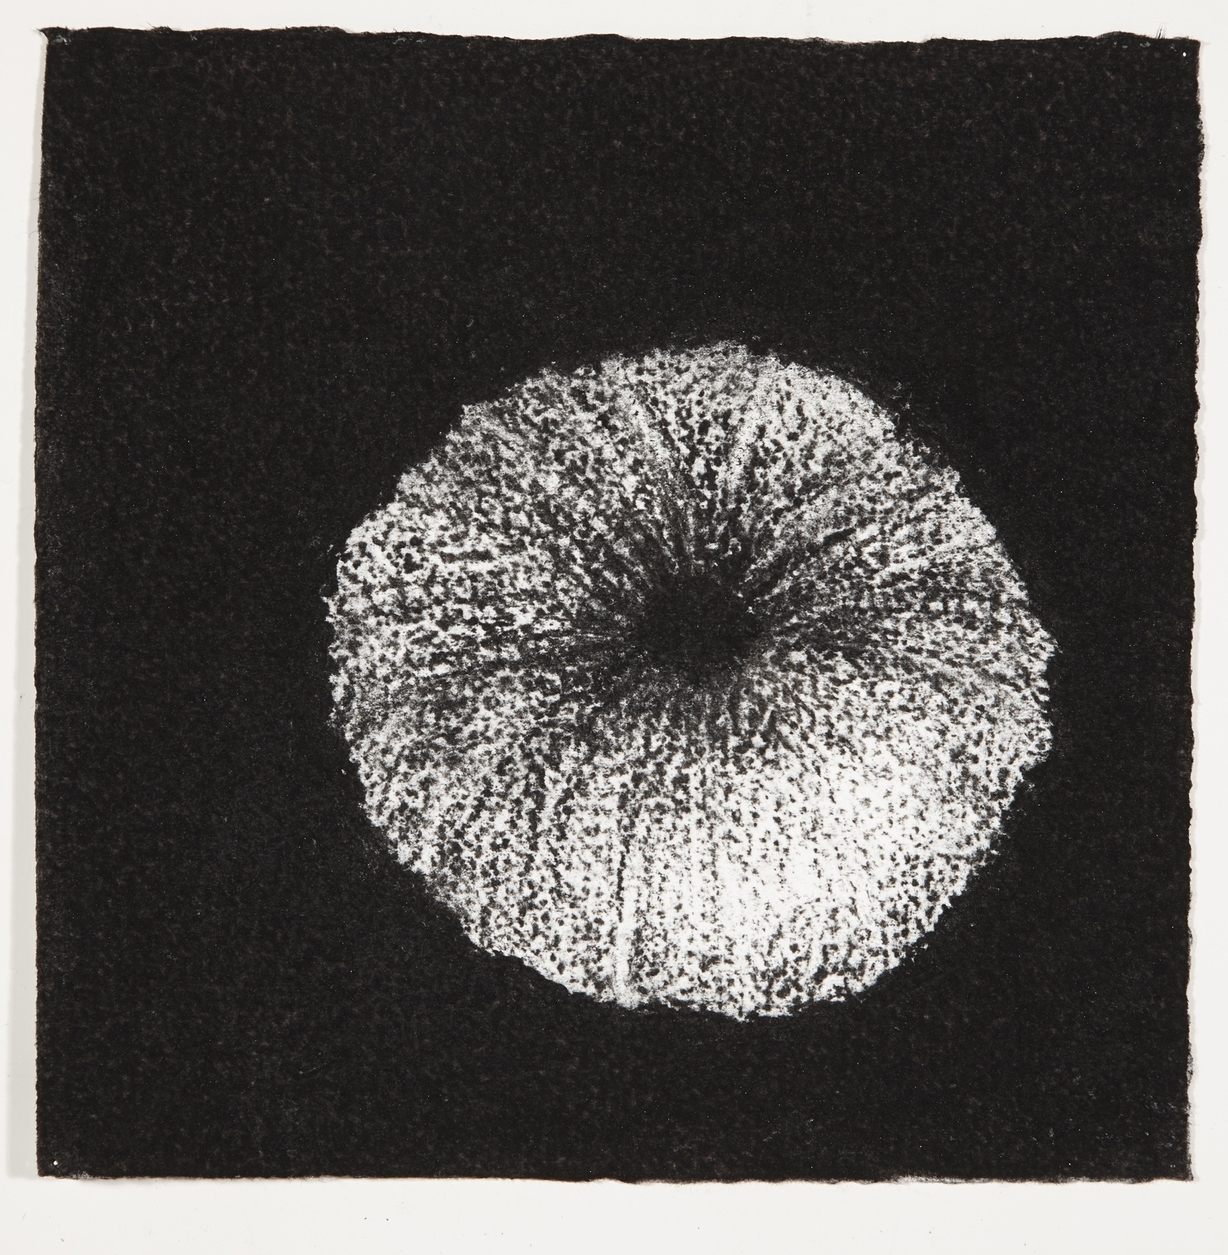 Urchin, 2014, charcoal on paper, 18x18cm